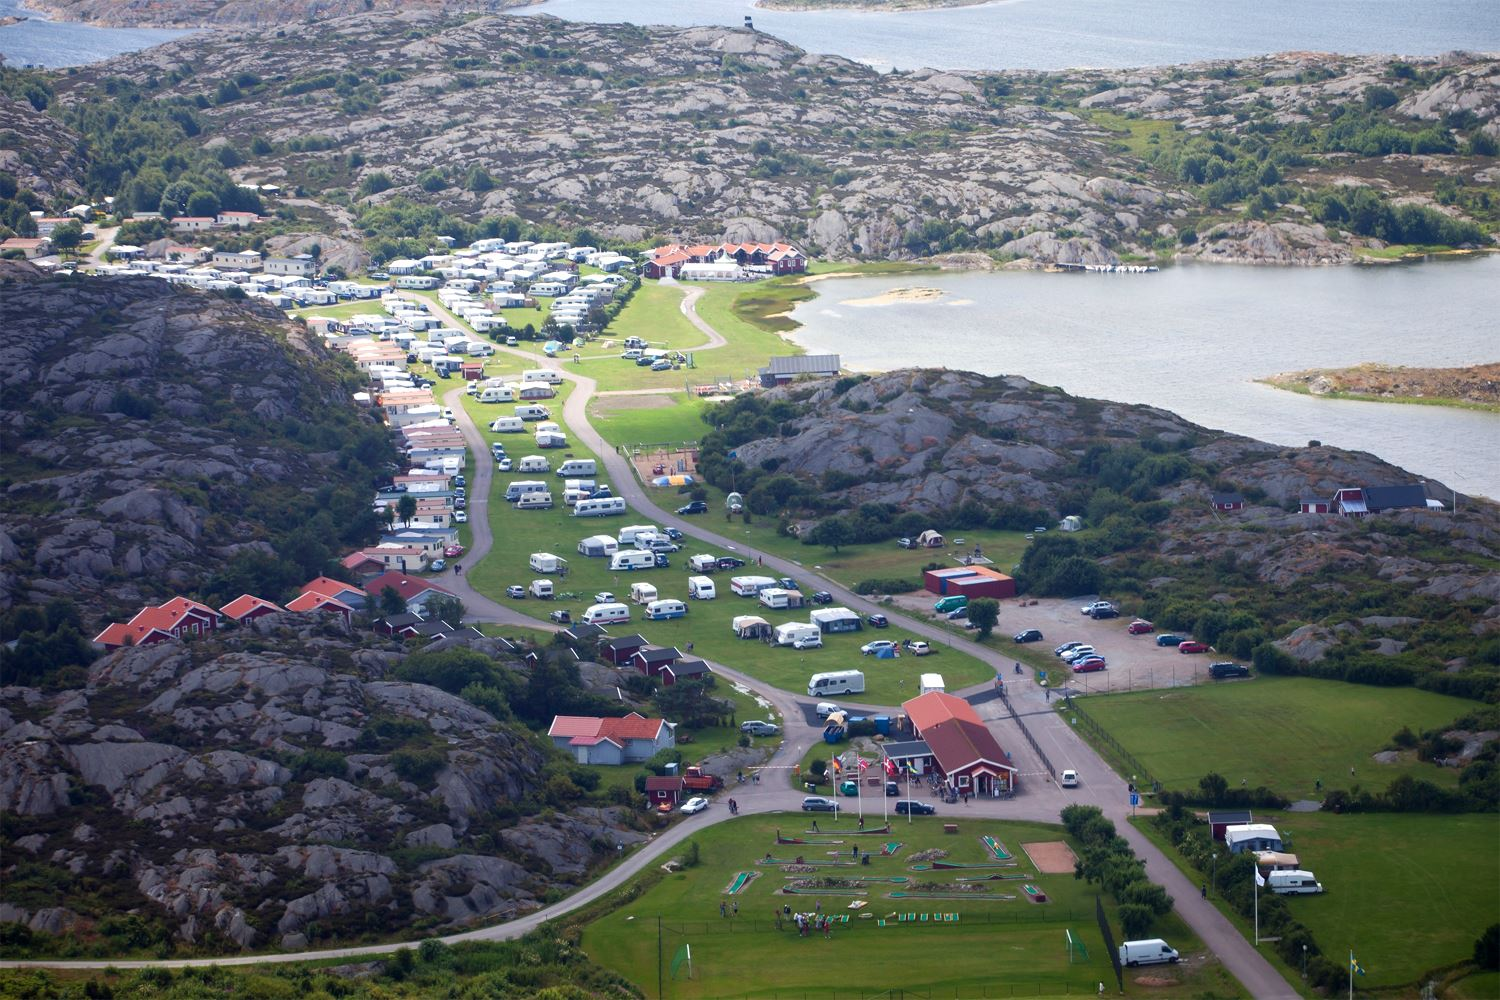 Stocken Camping/Stugor